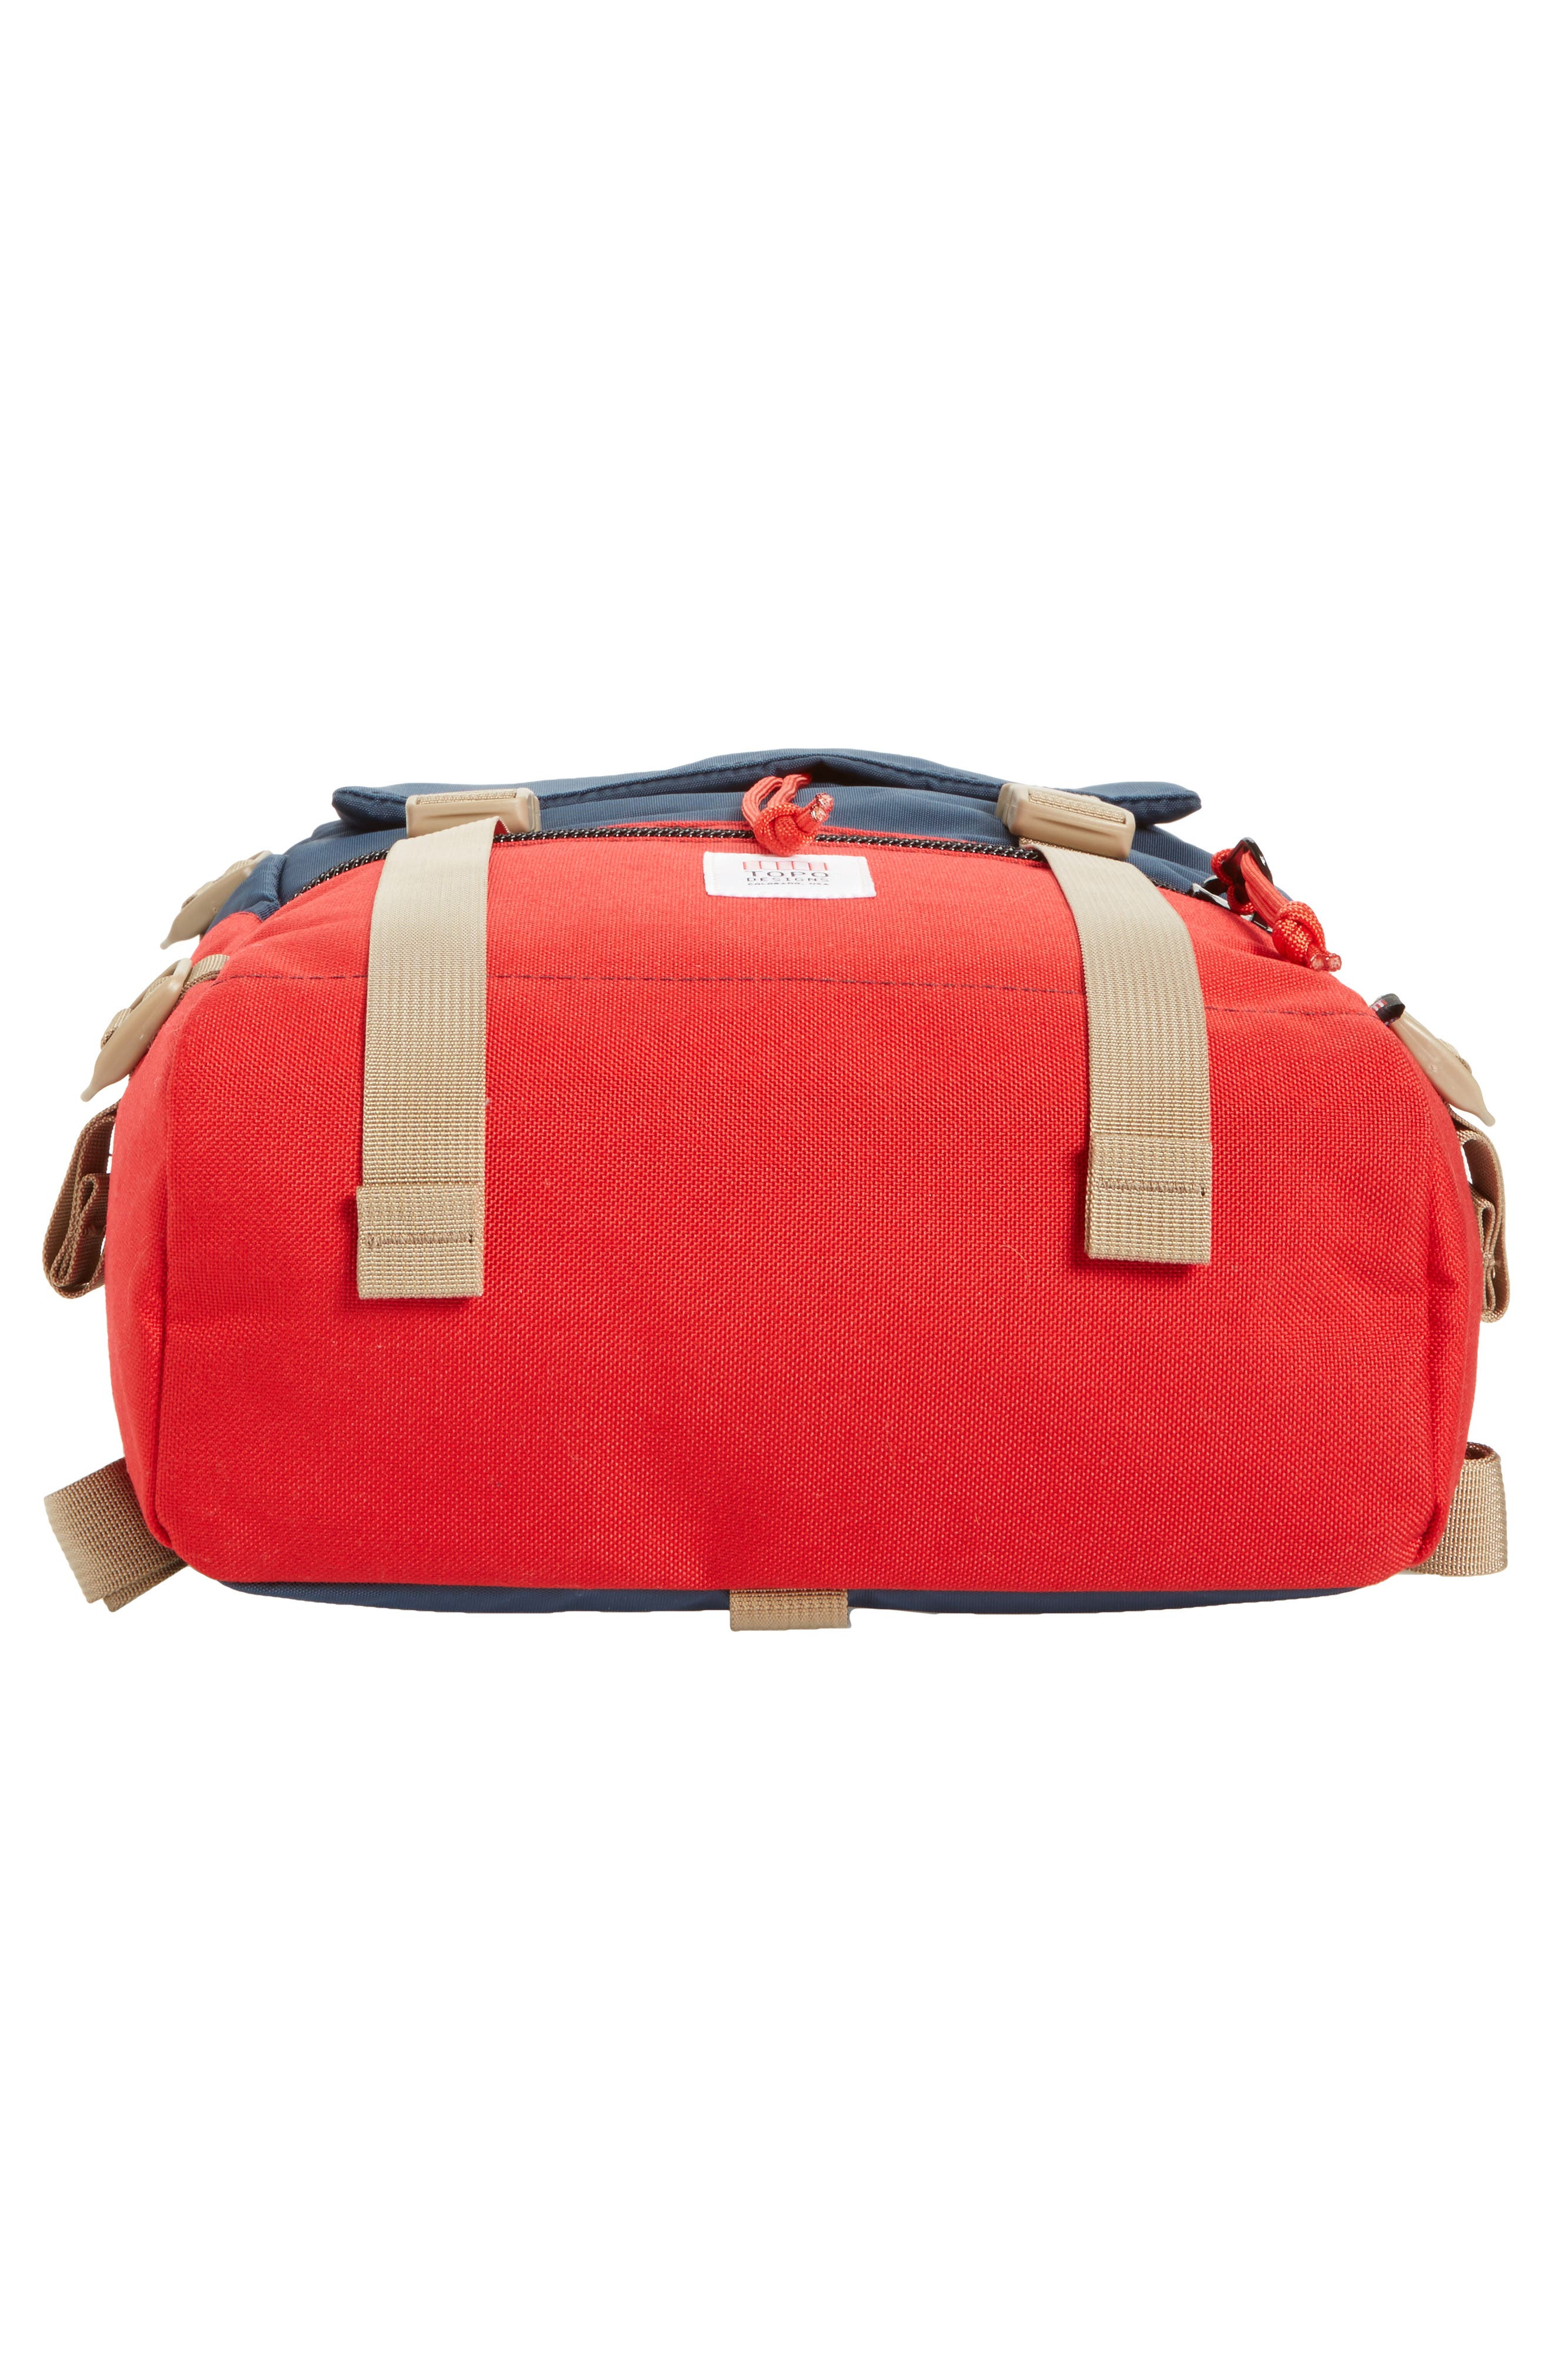 'Rover' Backpack,                             Alternate thumbnail 6, color,                             NAVY/ RED